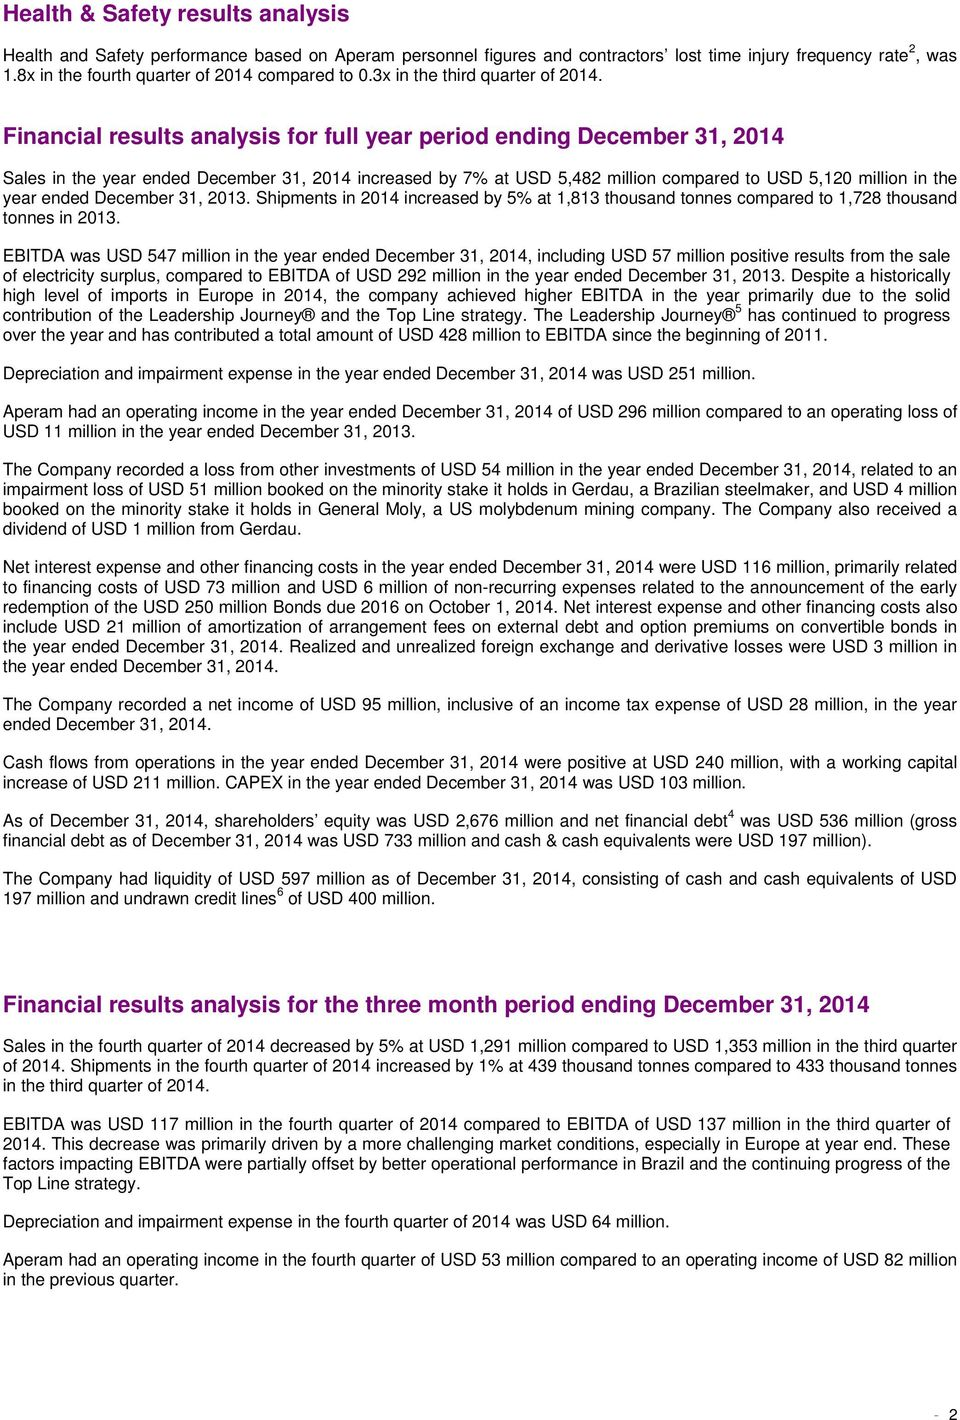 Financial results analysis for full year period ending 31, Sales in the year ended 31, increased by 7% at USD 5,482 million compared to USD 5,120 million in the year ended 31, 2013.